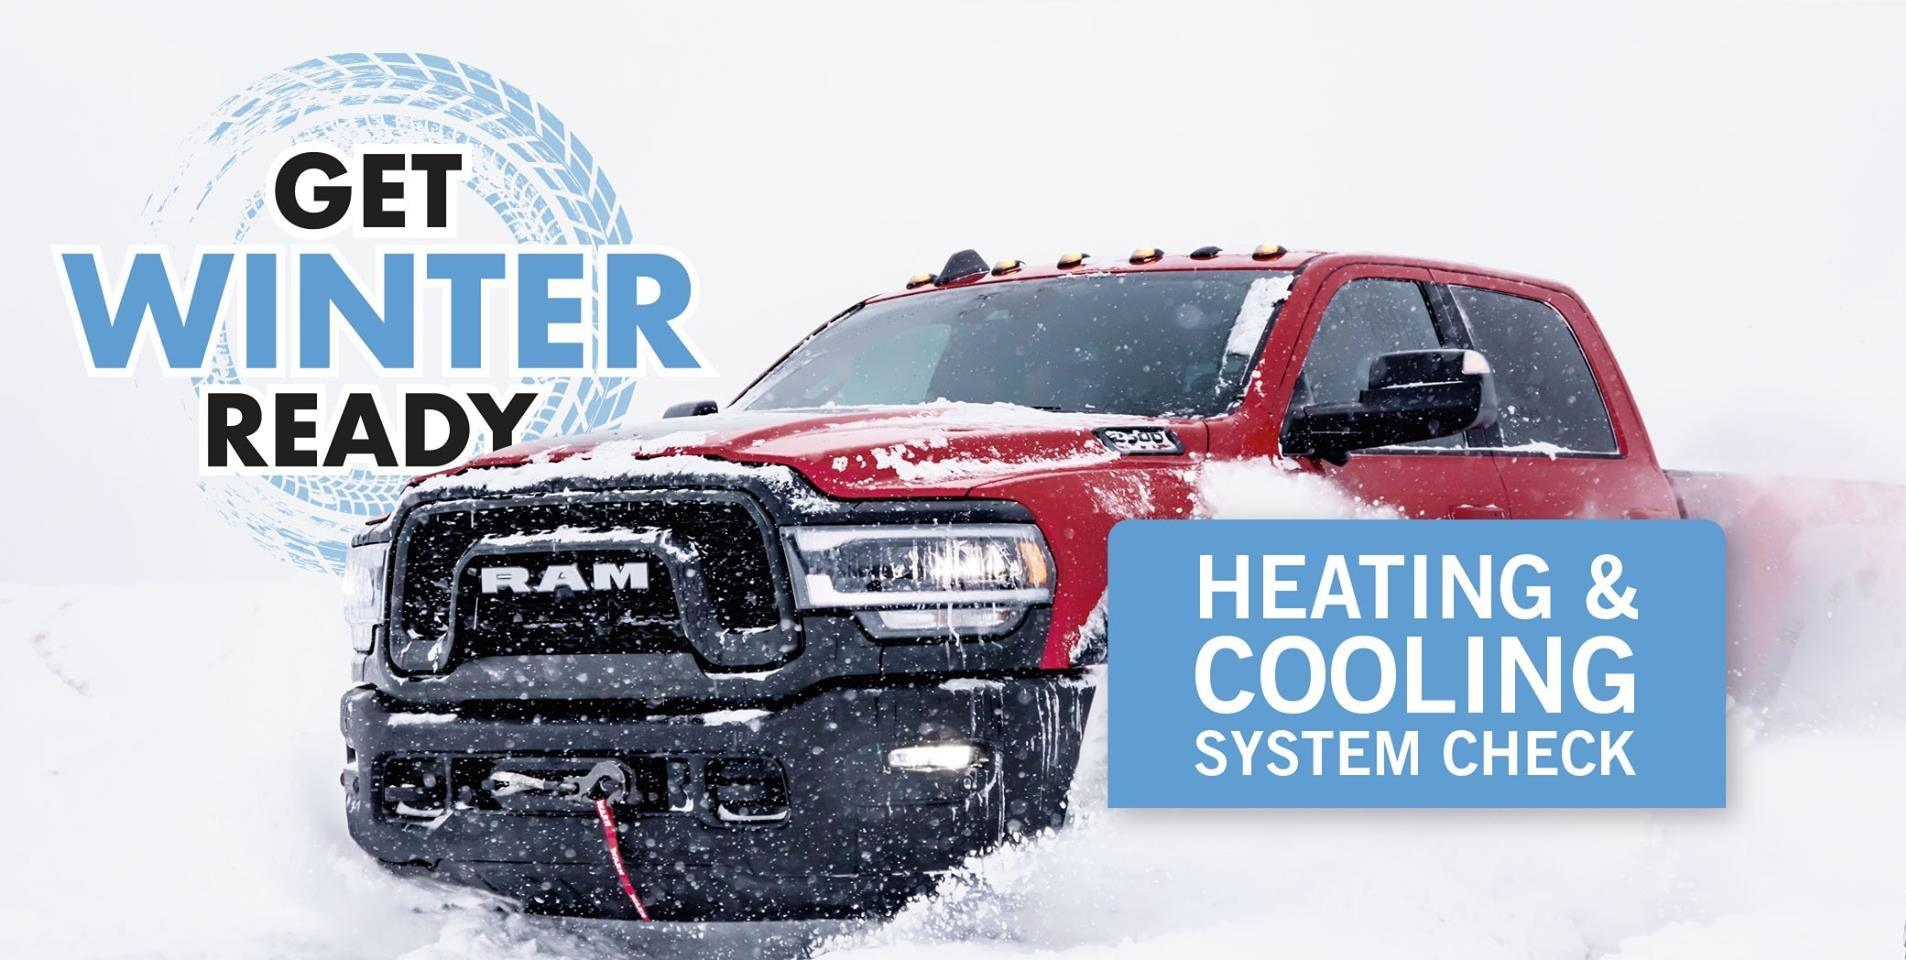 Winter Special Offers Incentives Edmonton Alberta Devon Chrysler Dodge Jeep Ram